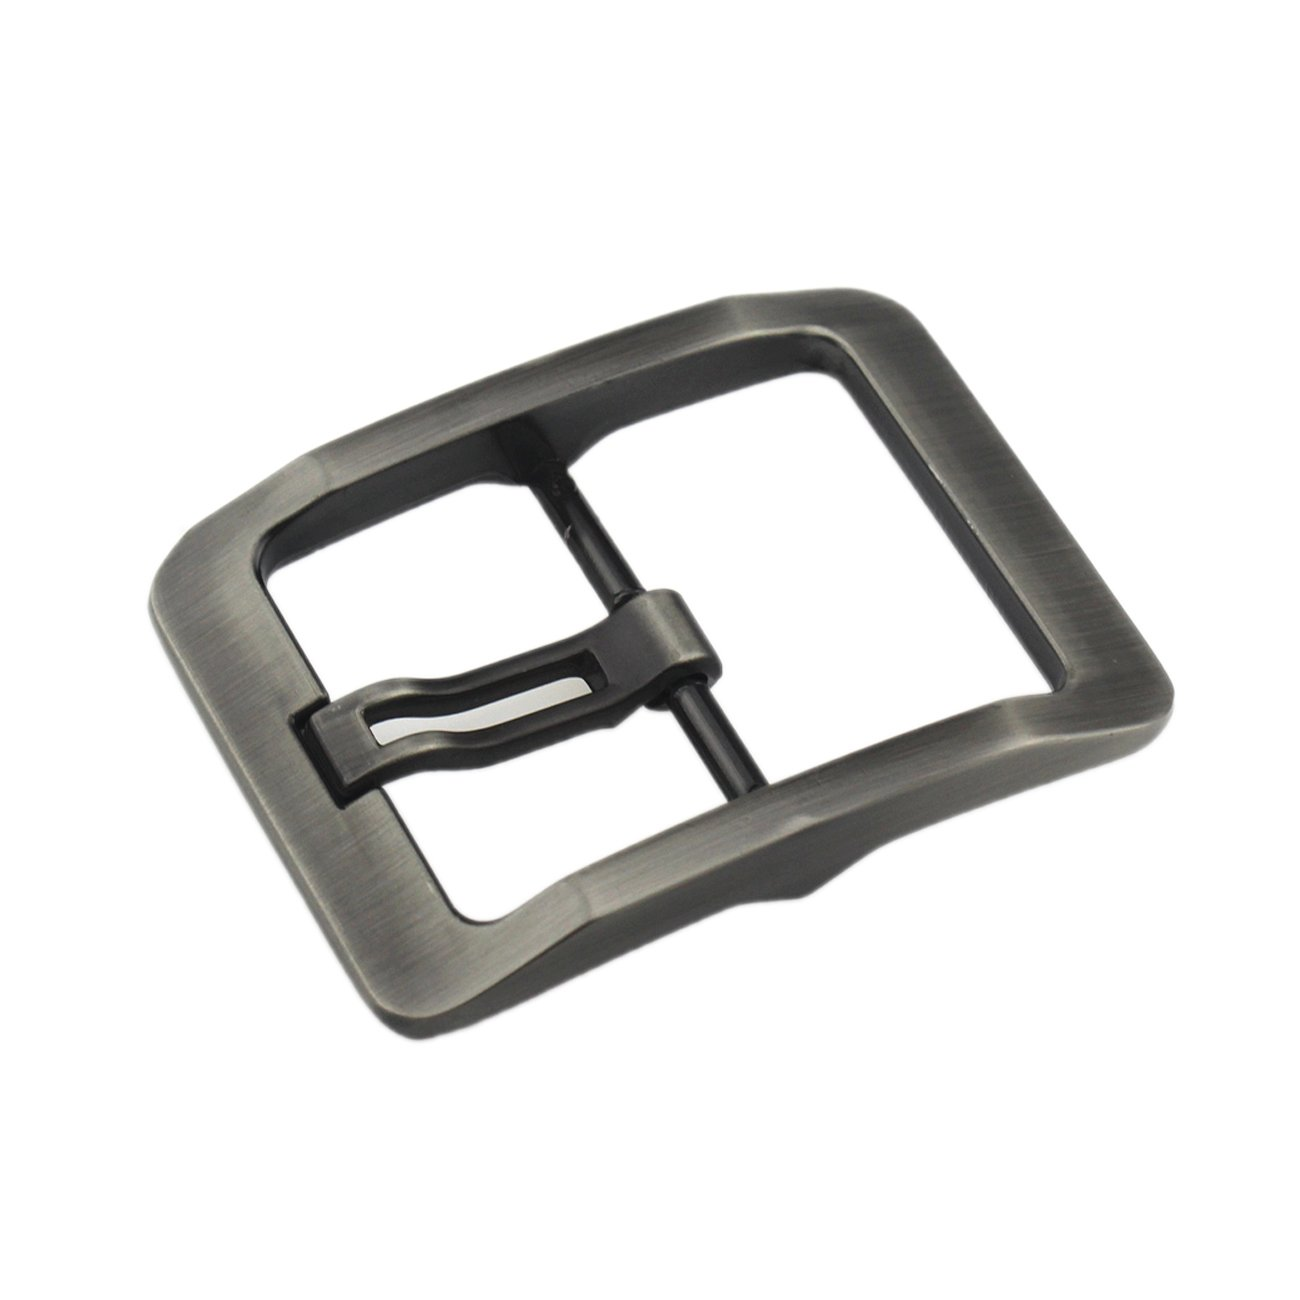 1.5 (37-40 mm) Single Prong Square Belt Buckle Replacement Belt Buckle (Bronze01)